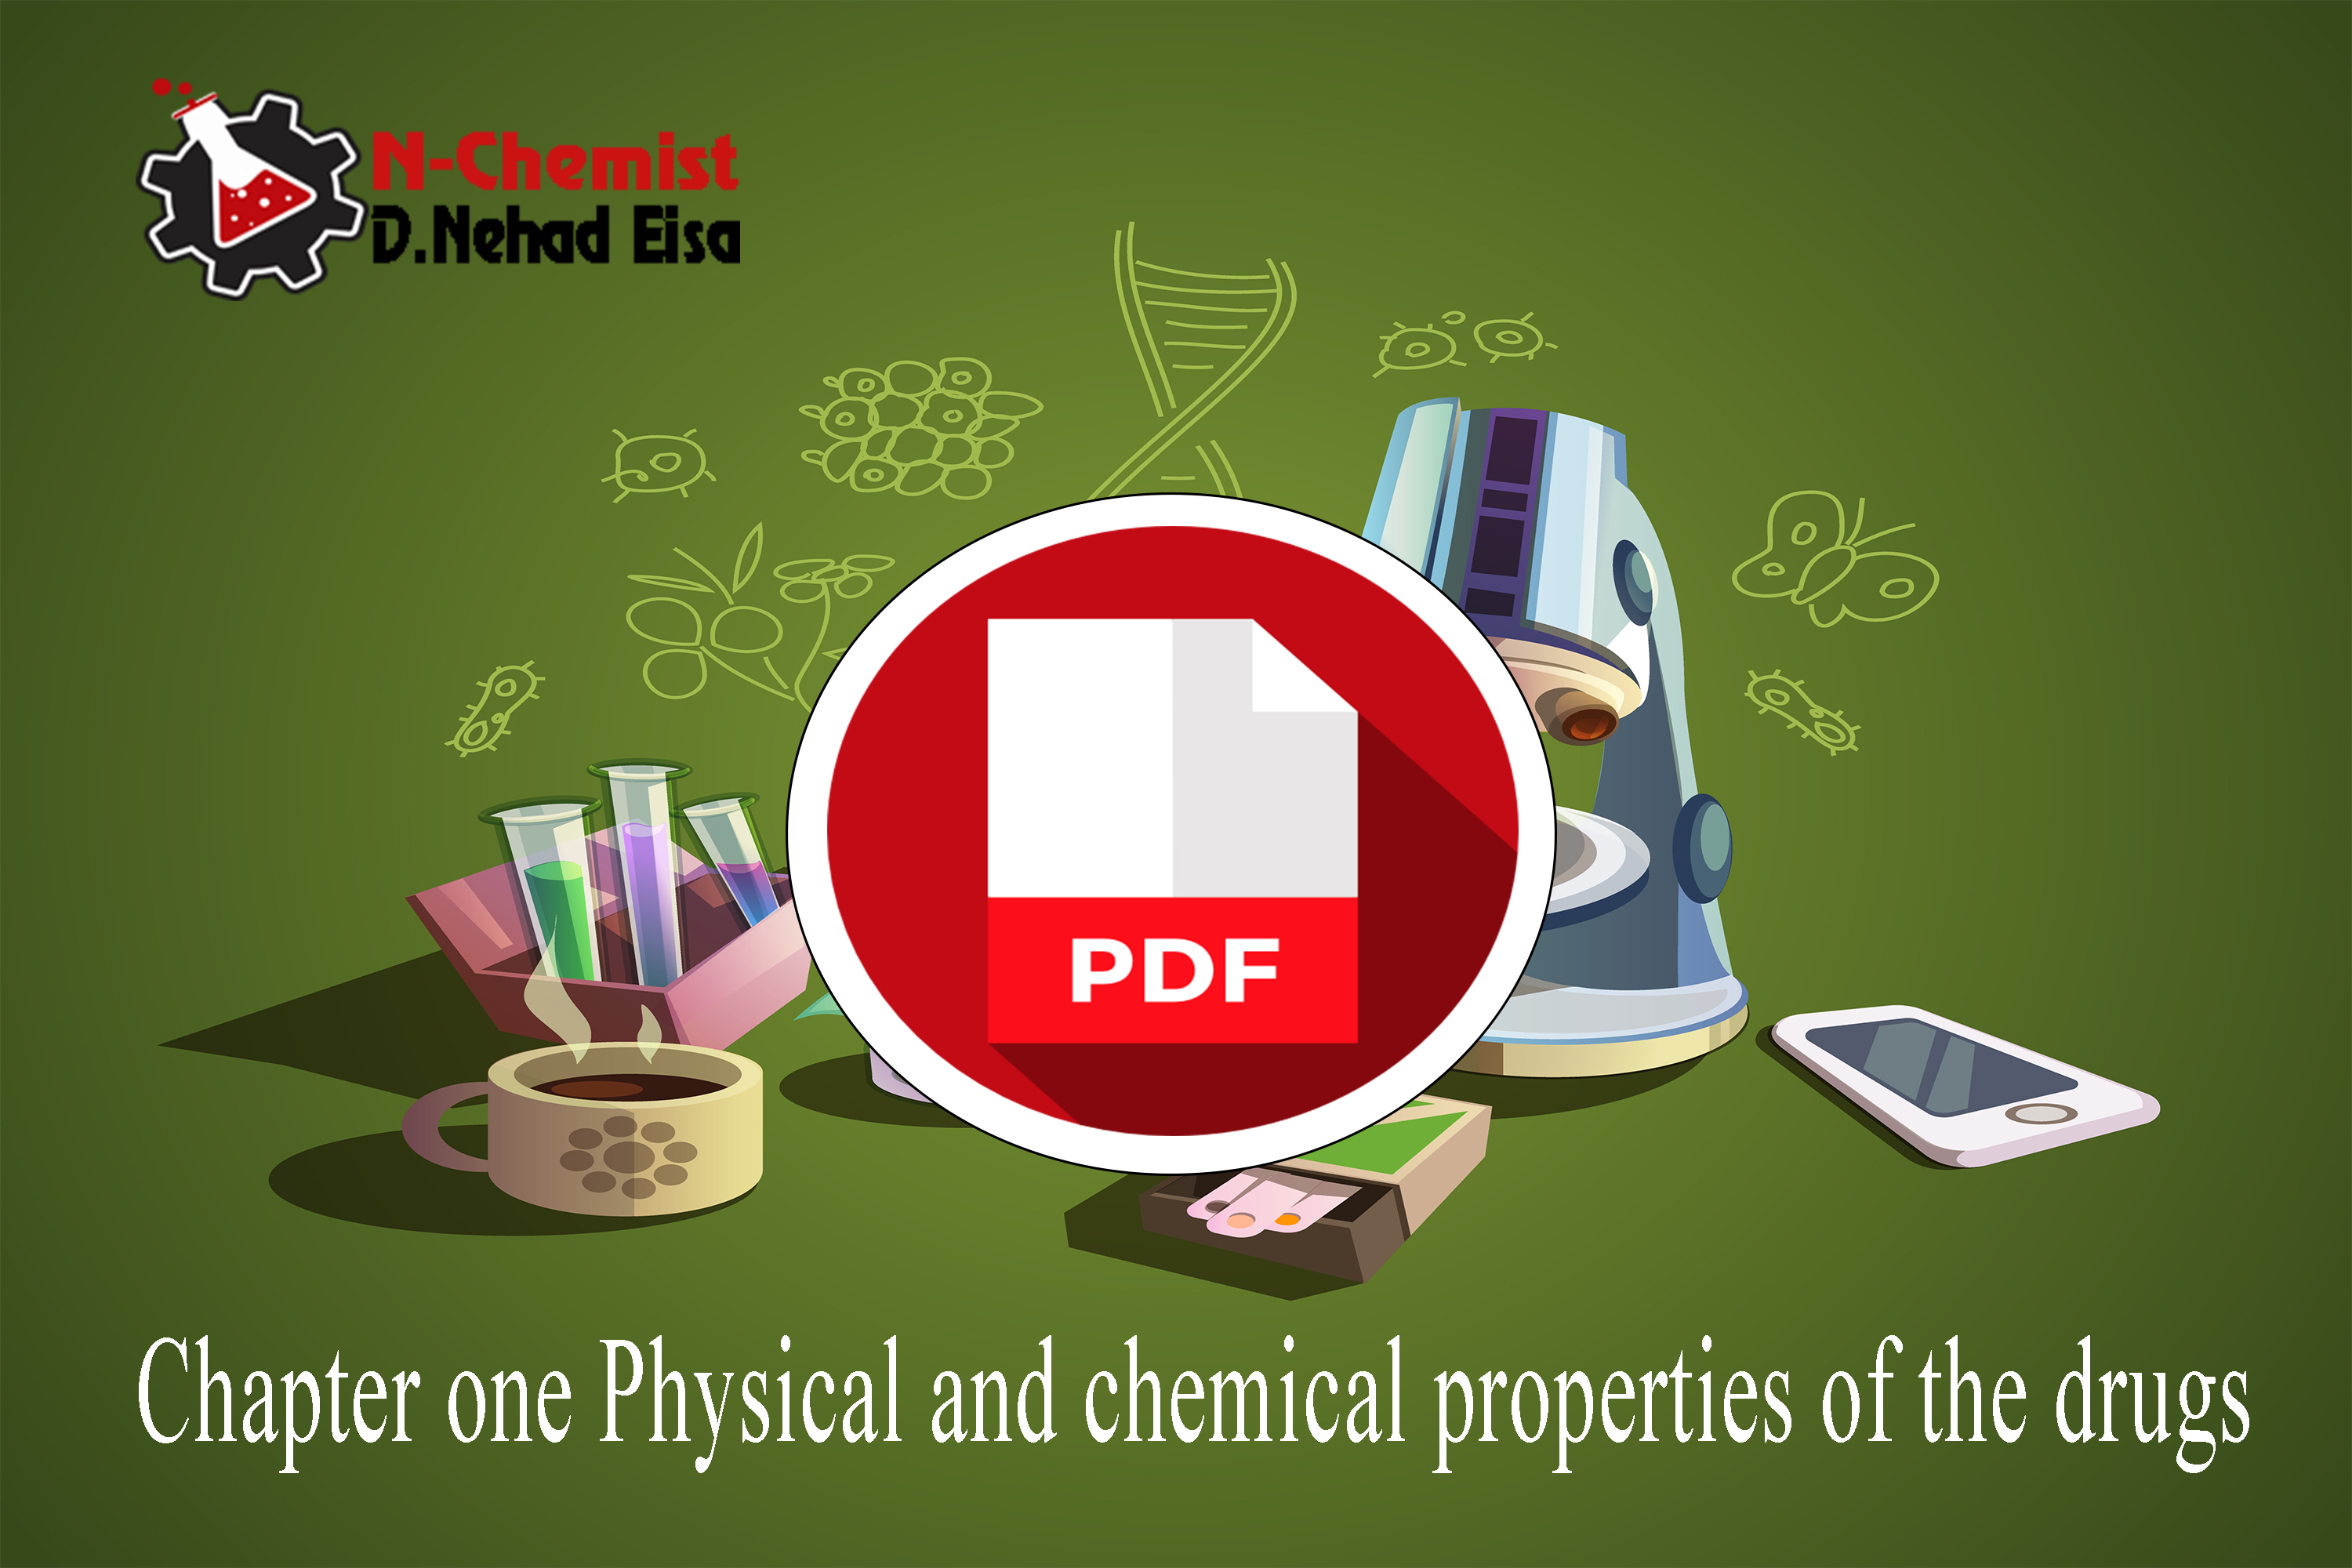 PDF-Chapter one Physical and chemical properties of the drugs